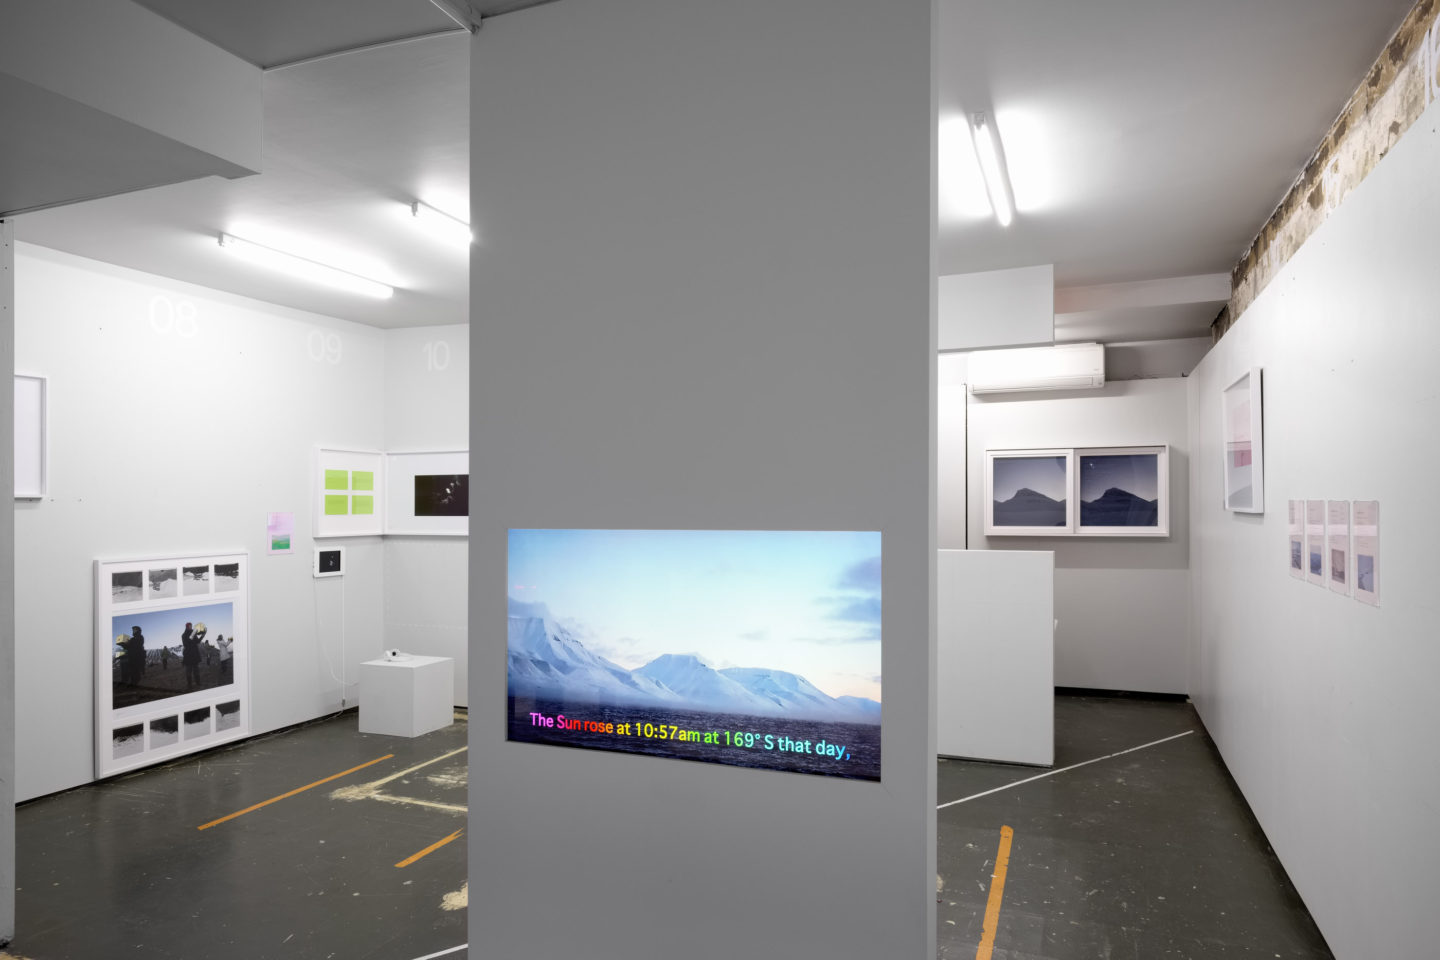 P!, Futures_Again_DSF9595_v1_Low_Res Installation view, A River in the Freezer, 2017